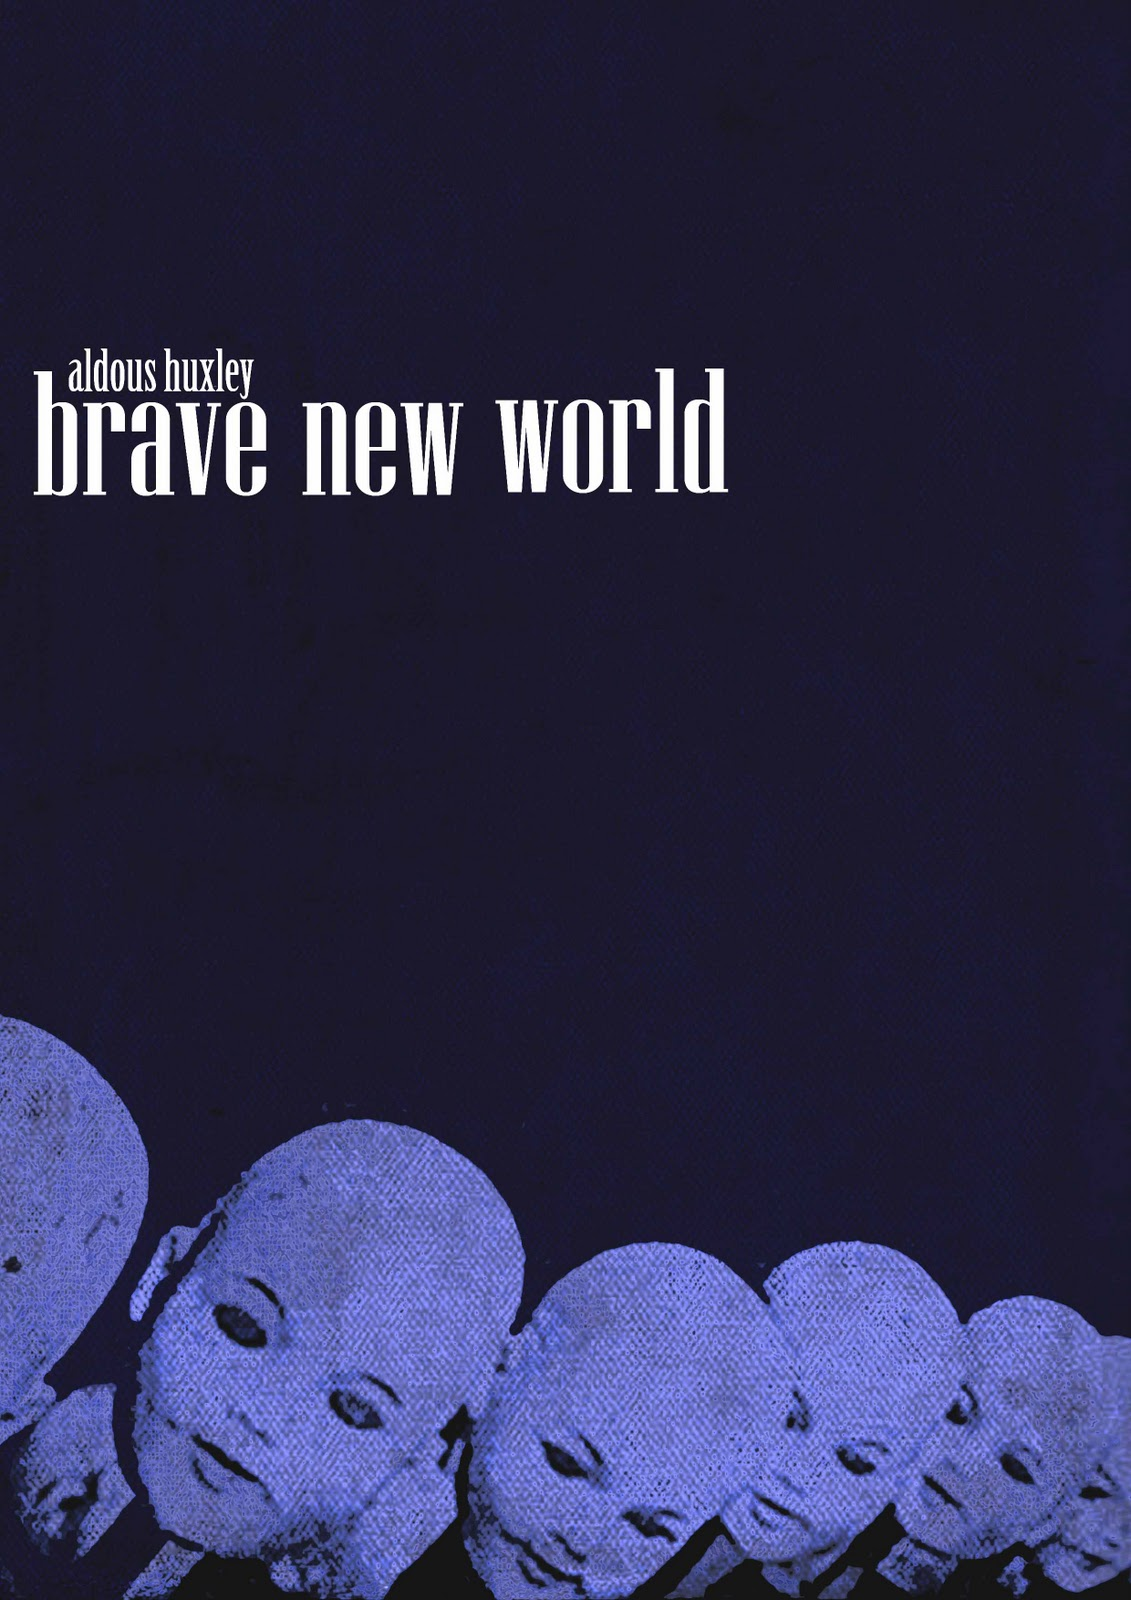 brave new world struggle to maintain Brave new world - kindle edition by aldous huxley download it once and read it on your kindle device, pc, phones or tablets use features like bookmarks, note taking and highlighting while reading brave new world.